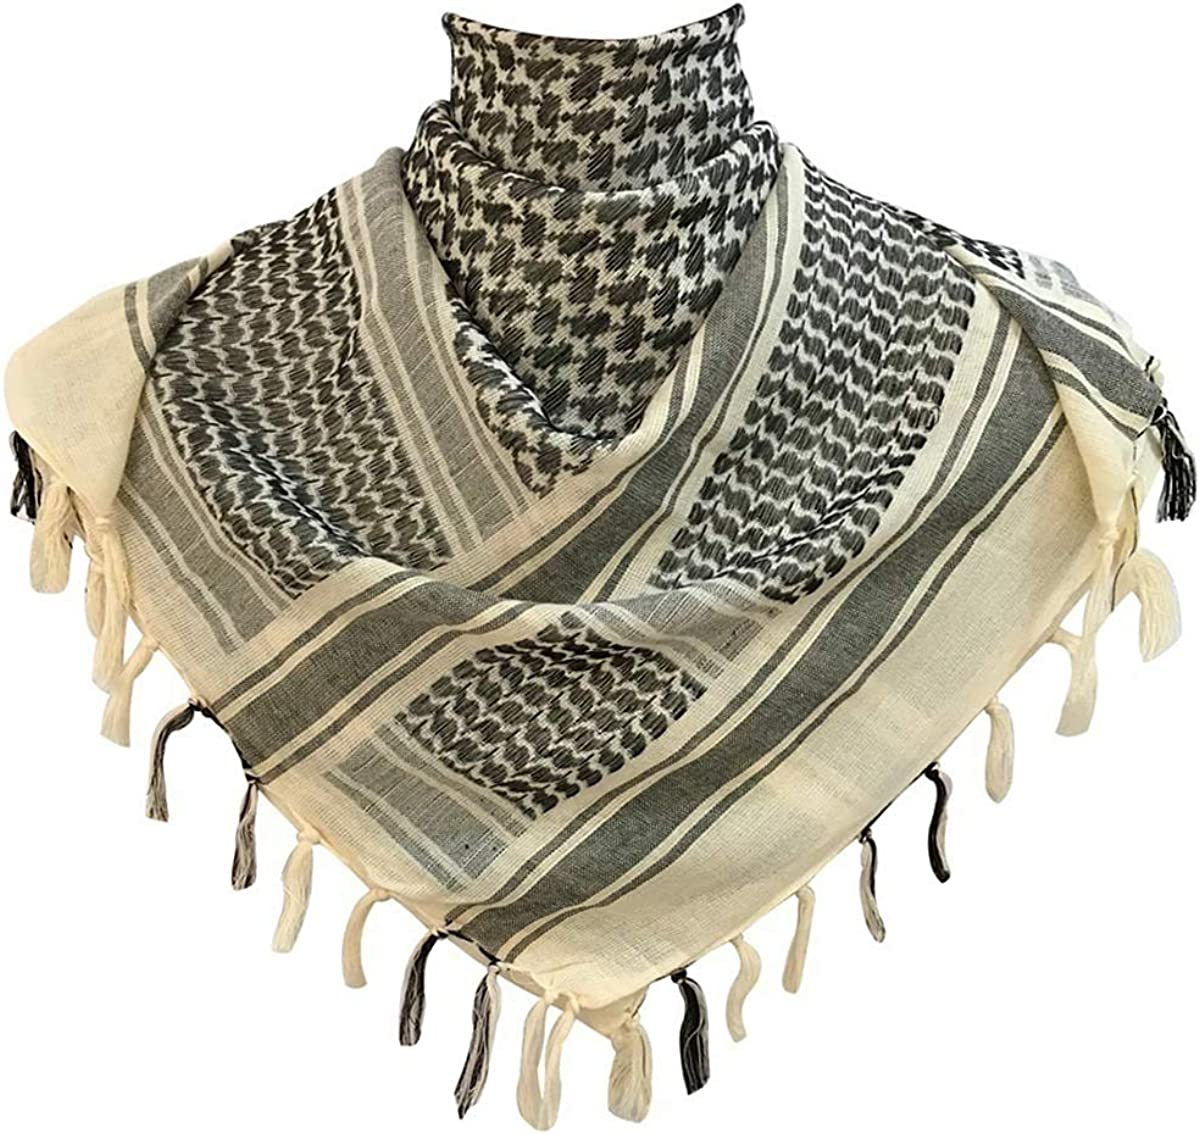 G.S Regular store YOZOH 100% Cotton Import Scarf Tactica Arab Military Shemagh